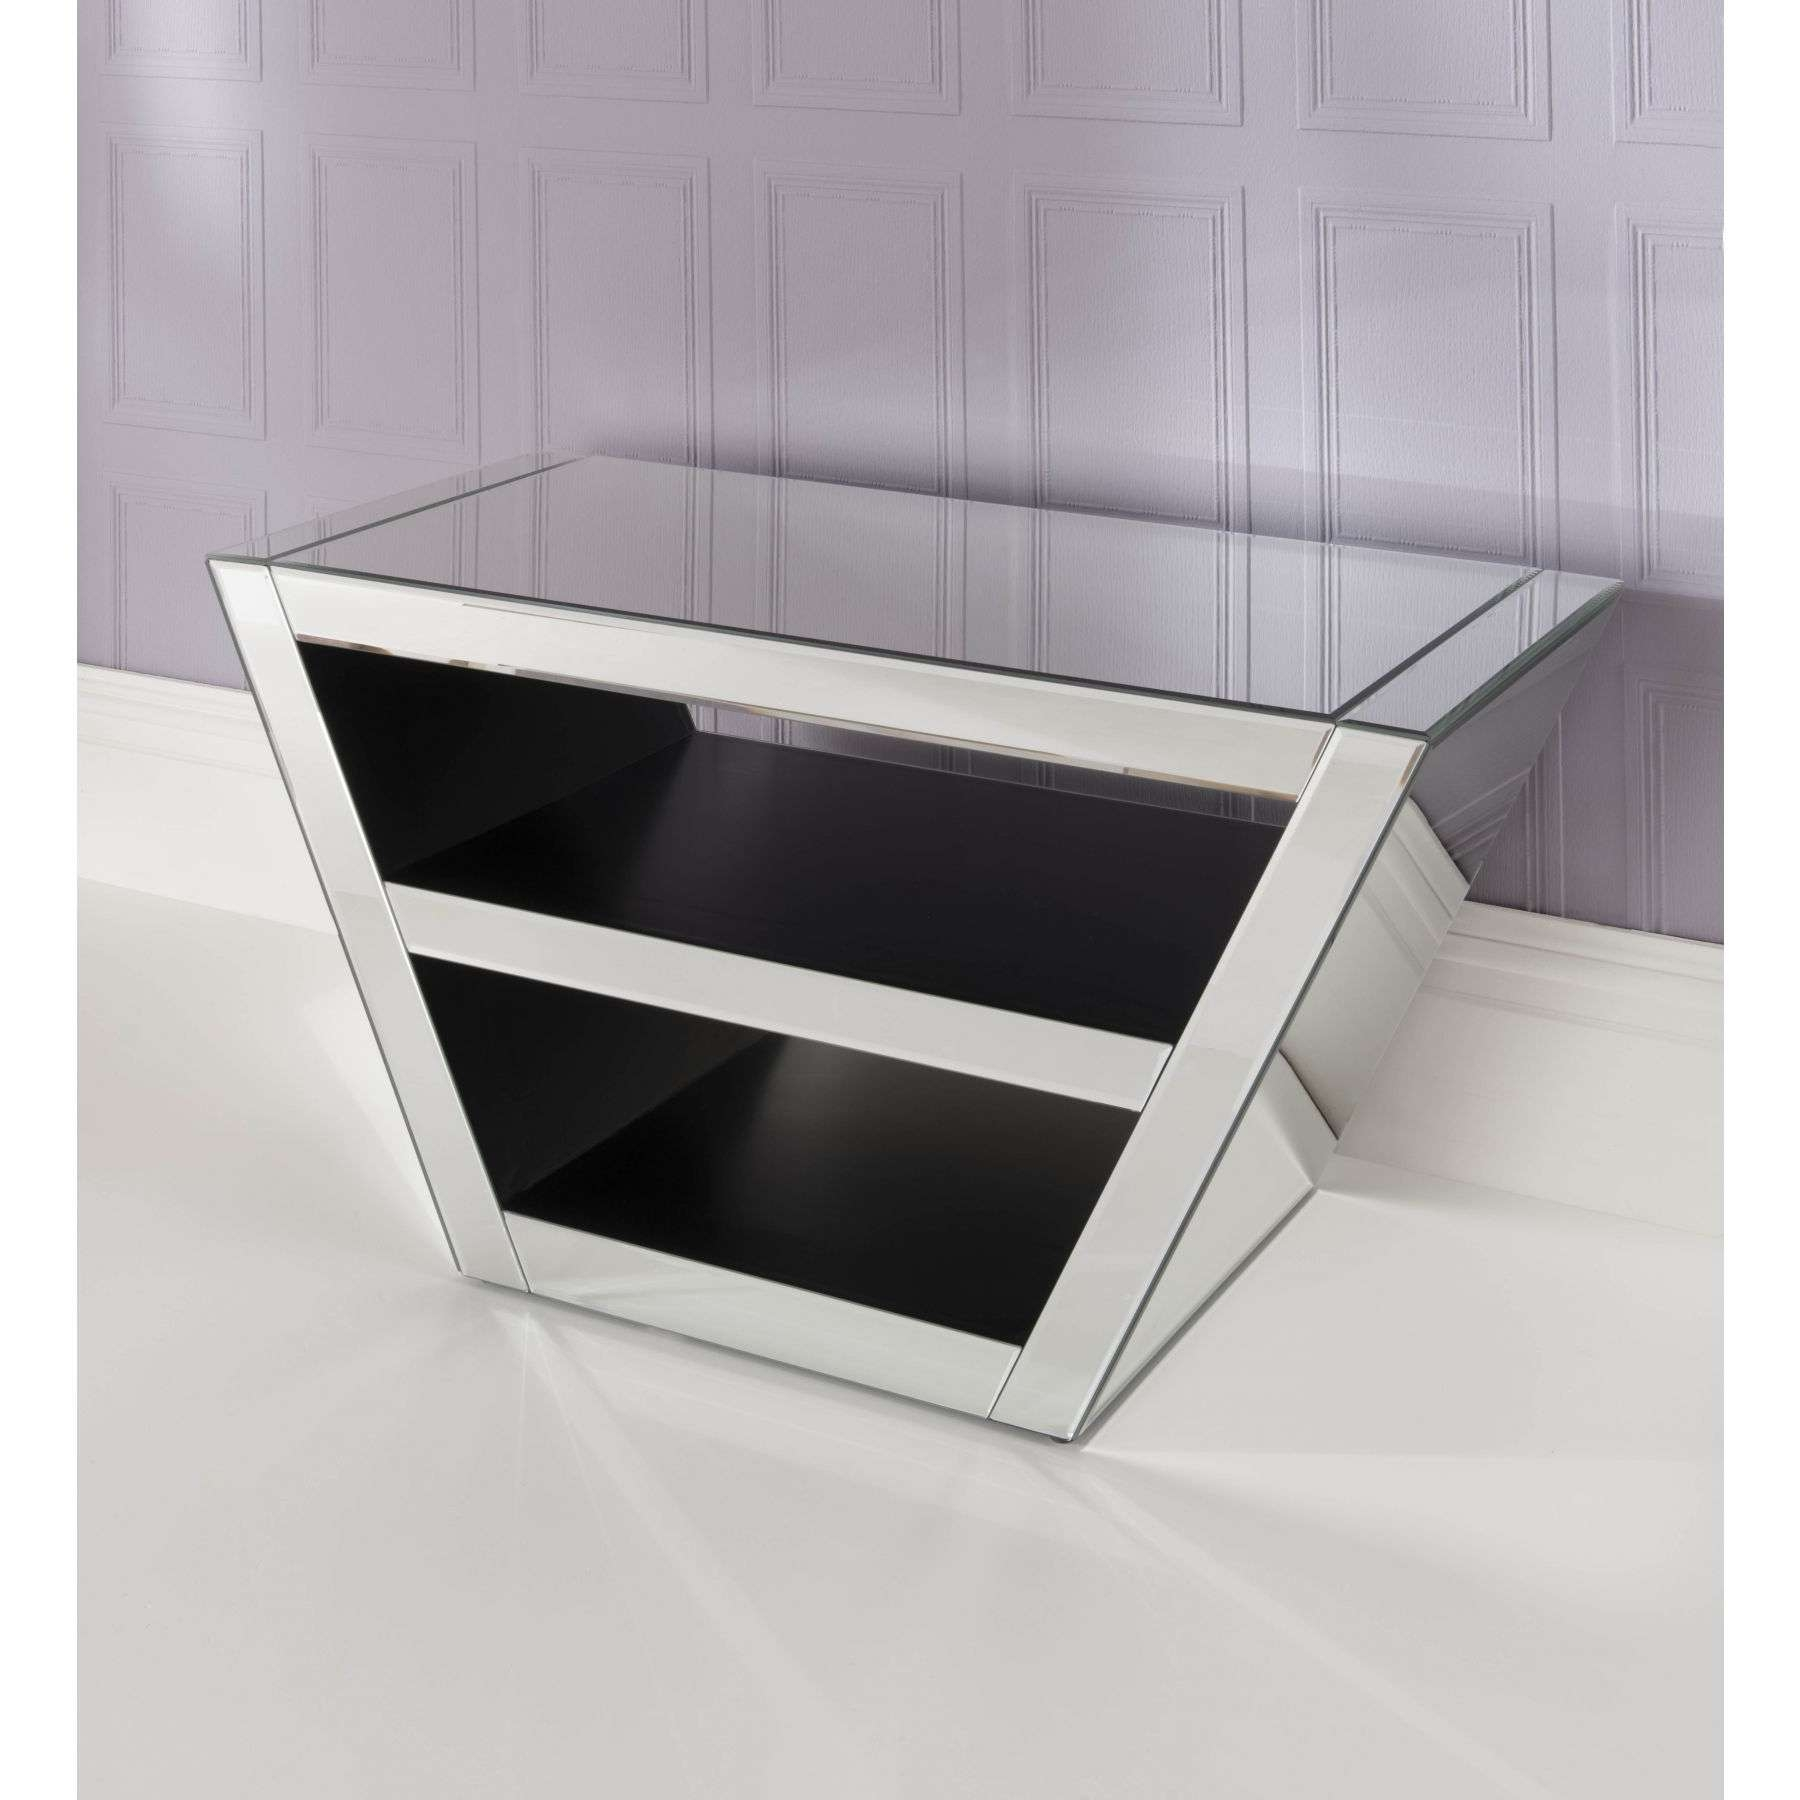 Mirrored Tv Cabinet | Venetian Glass Tv Stand | Homesdirect365 With Tv Cabinets (View 4 of 20)